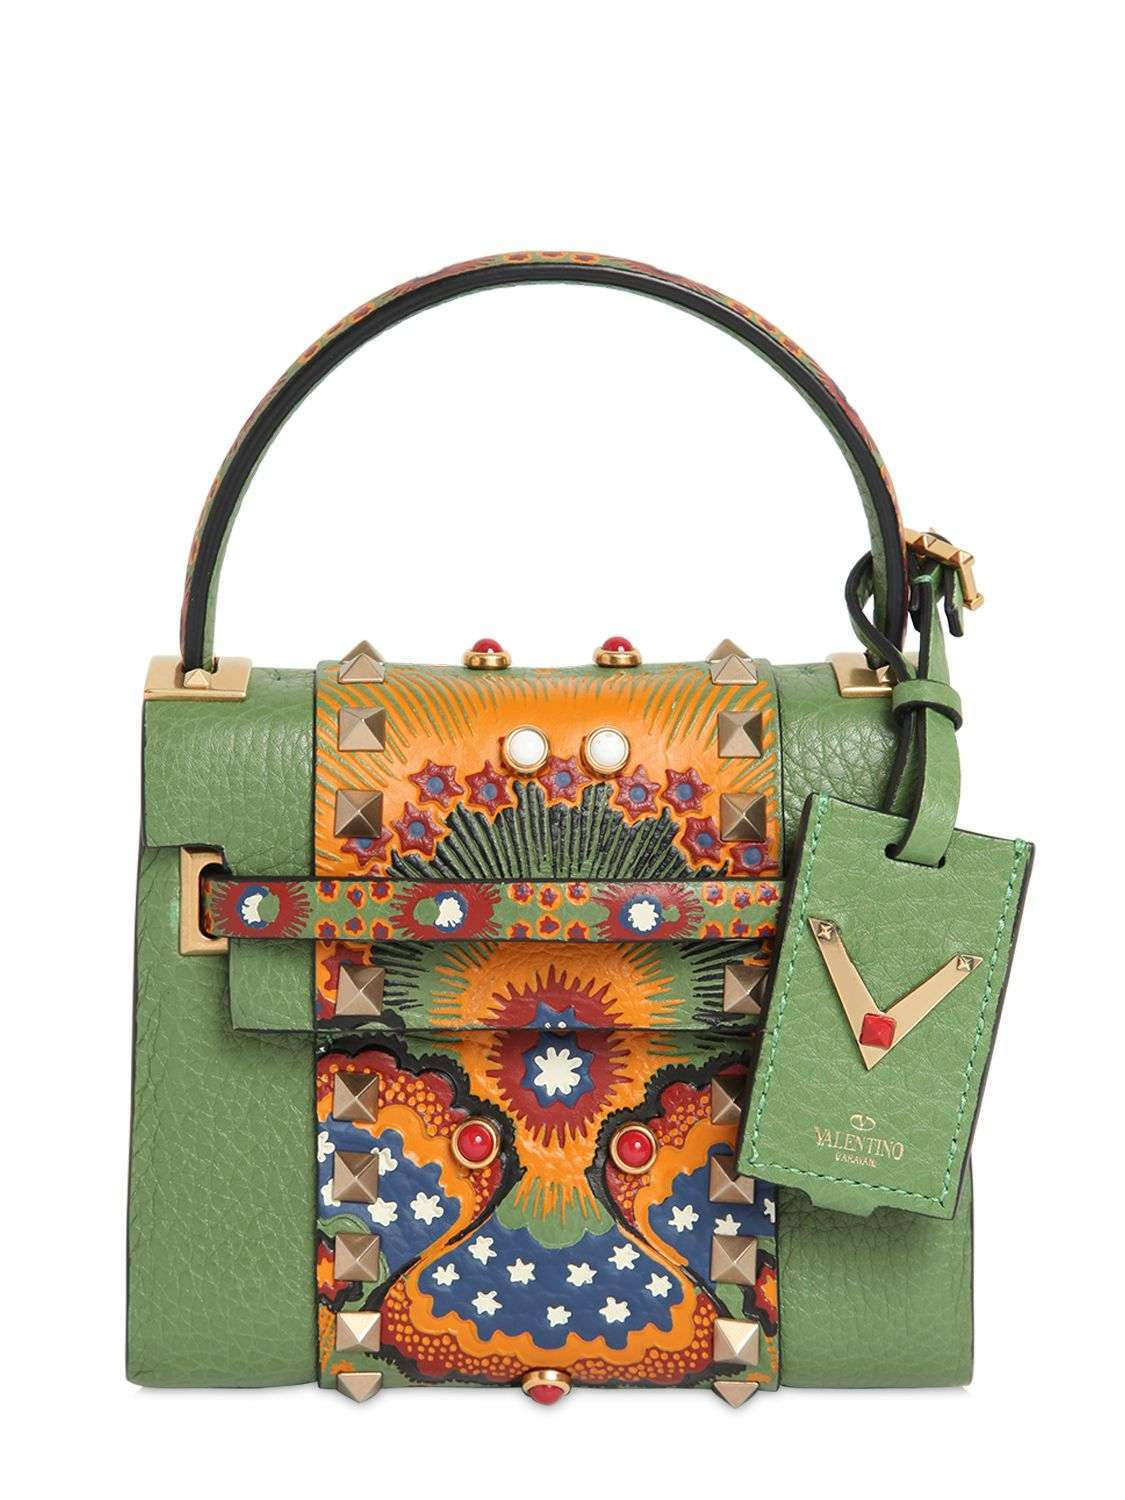 Mini bag in pelle verde con inserto stampa